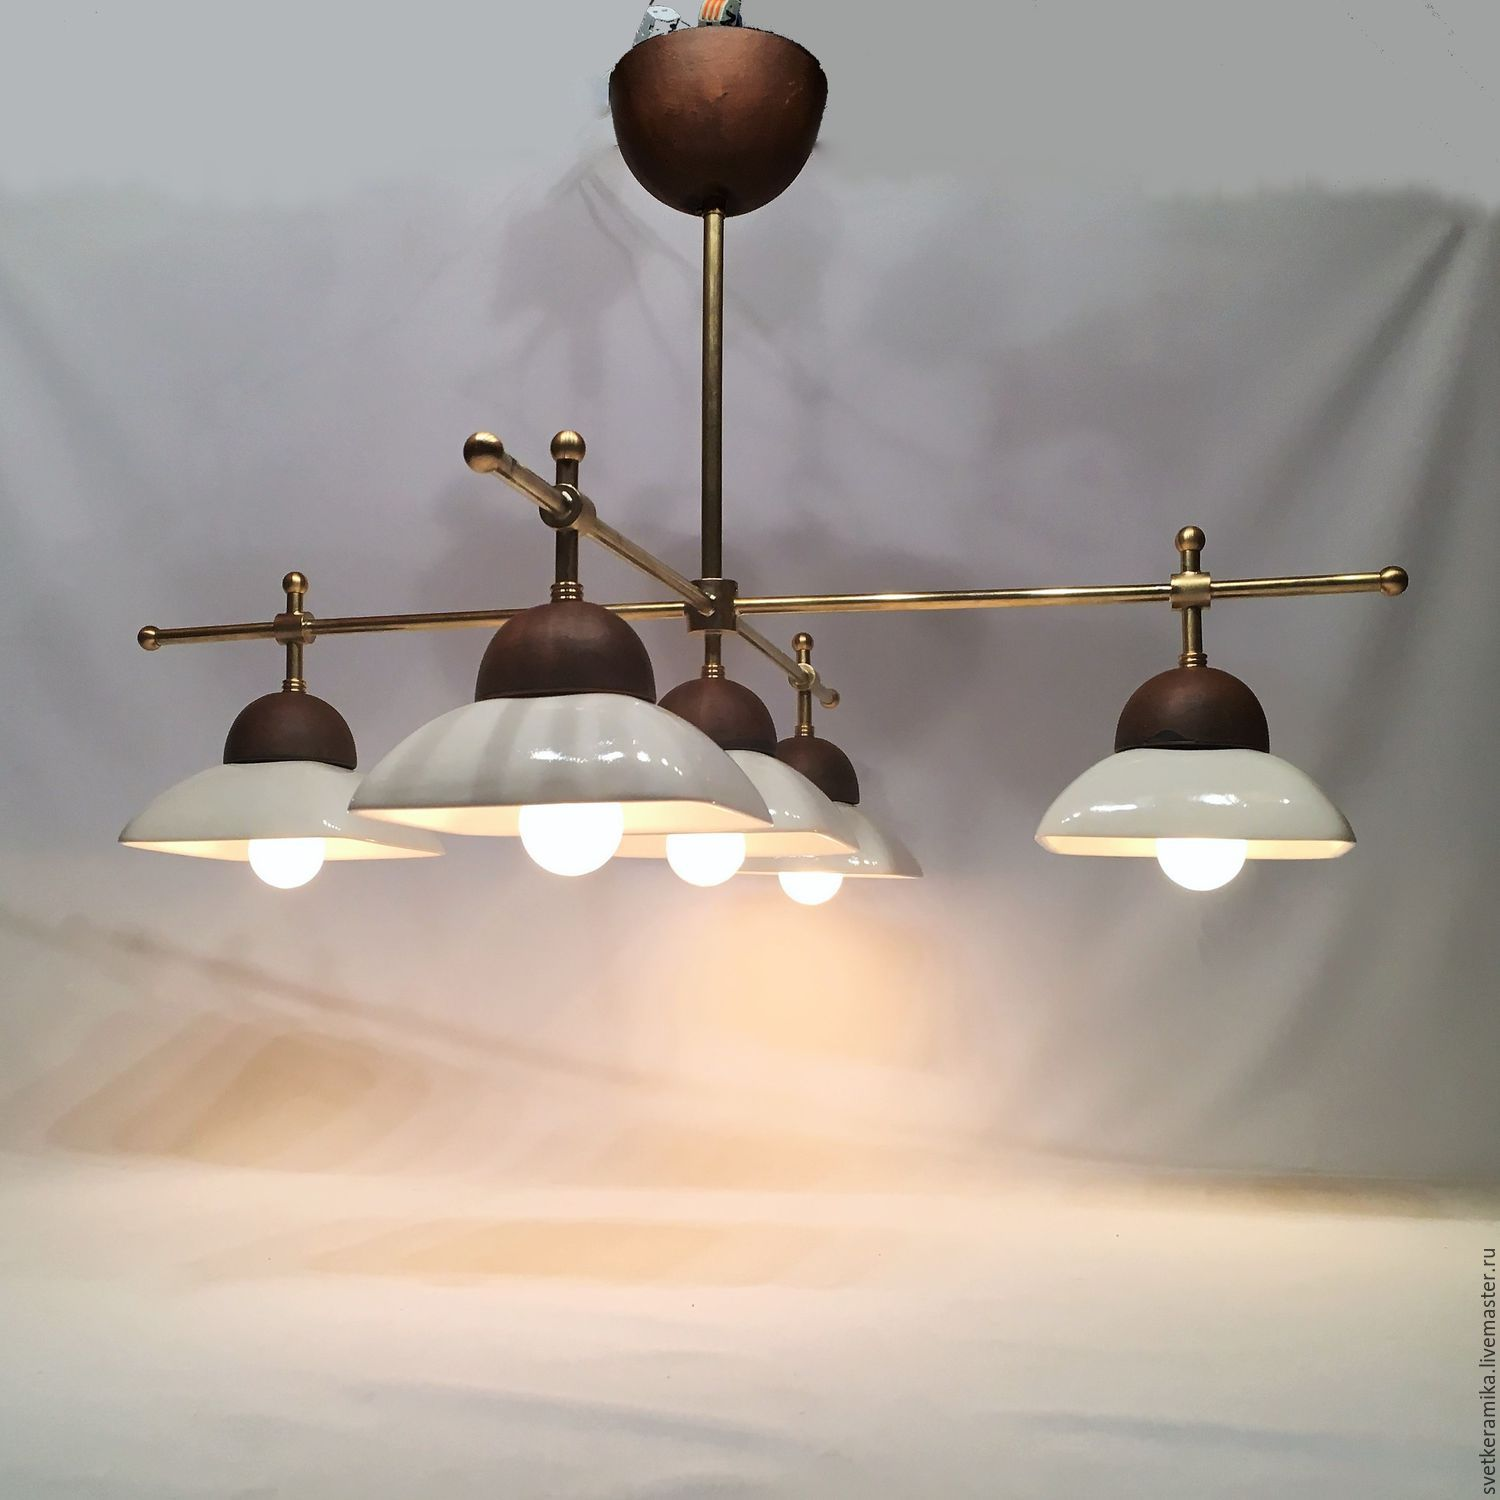 Ceramic chandelier with five shades and brass frame shop online on ceramic chandelier with five shades and brass frame arubaitofo Image collections